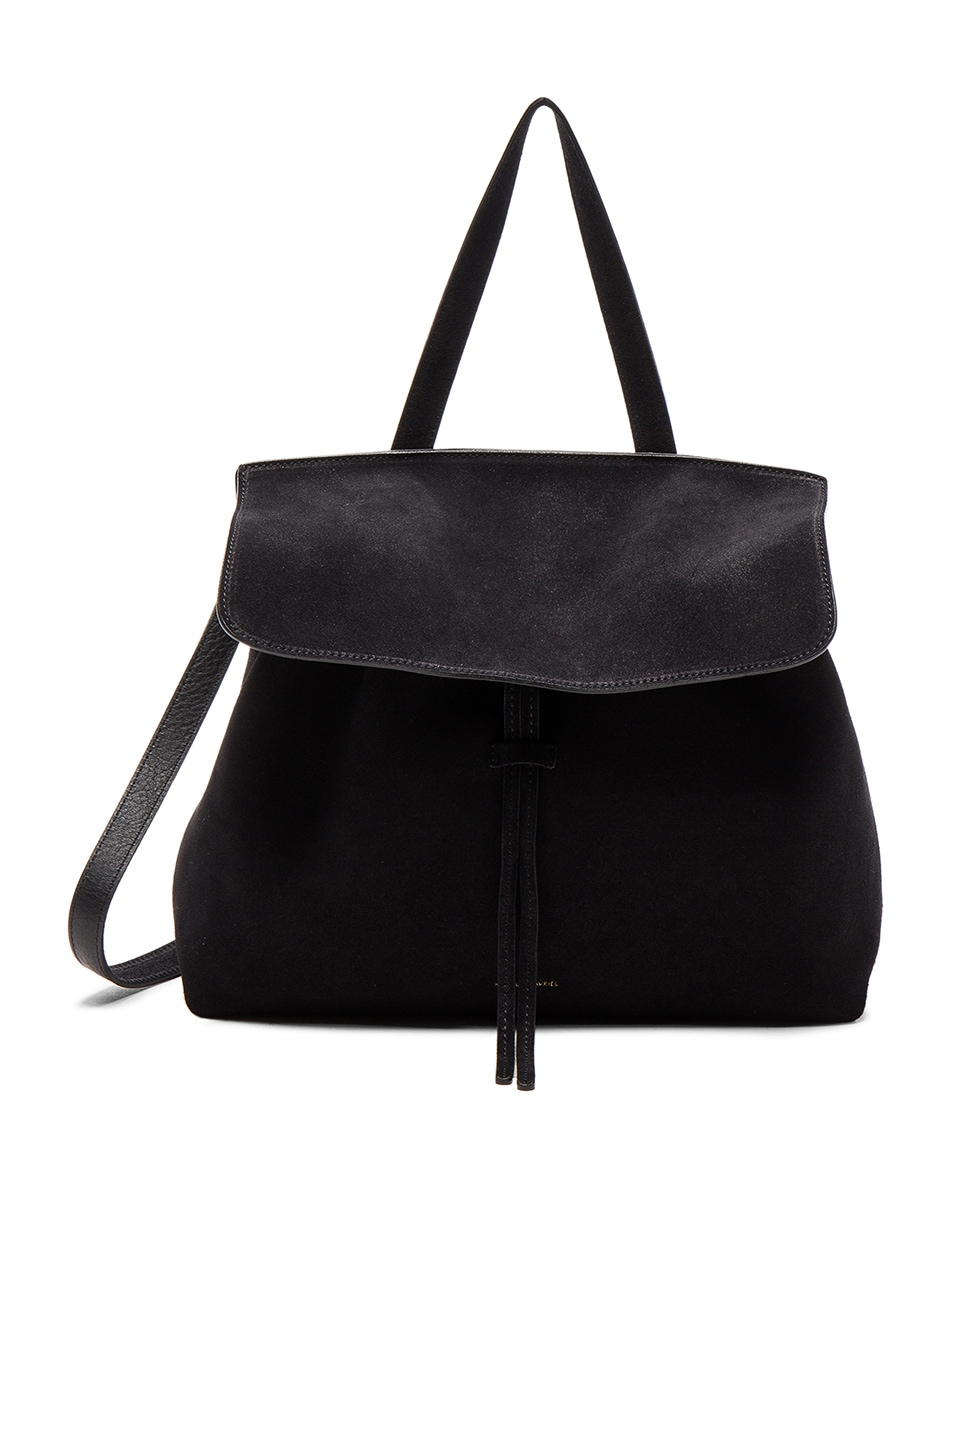 Image 1 of Mansur Gavriel Lady Bag in Black Suede